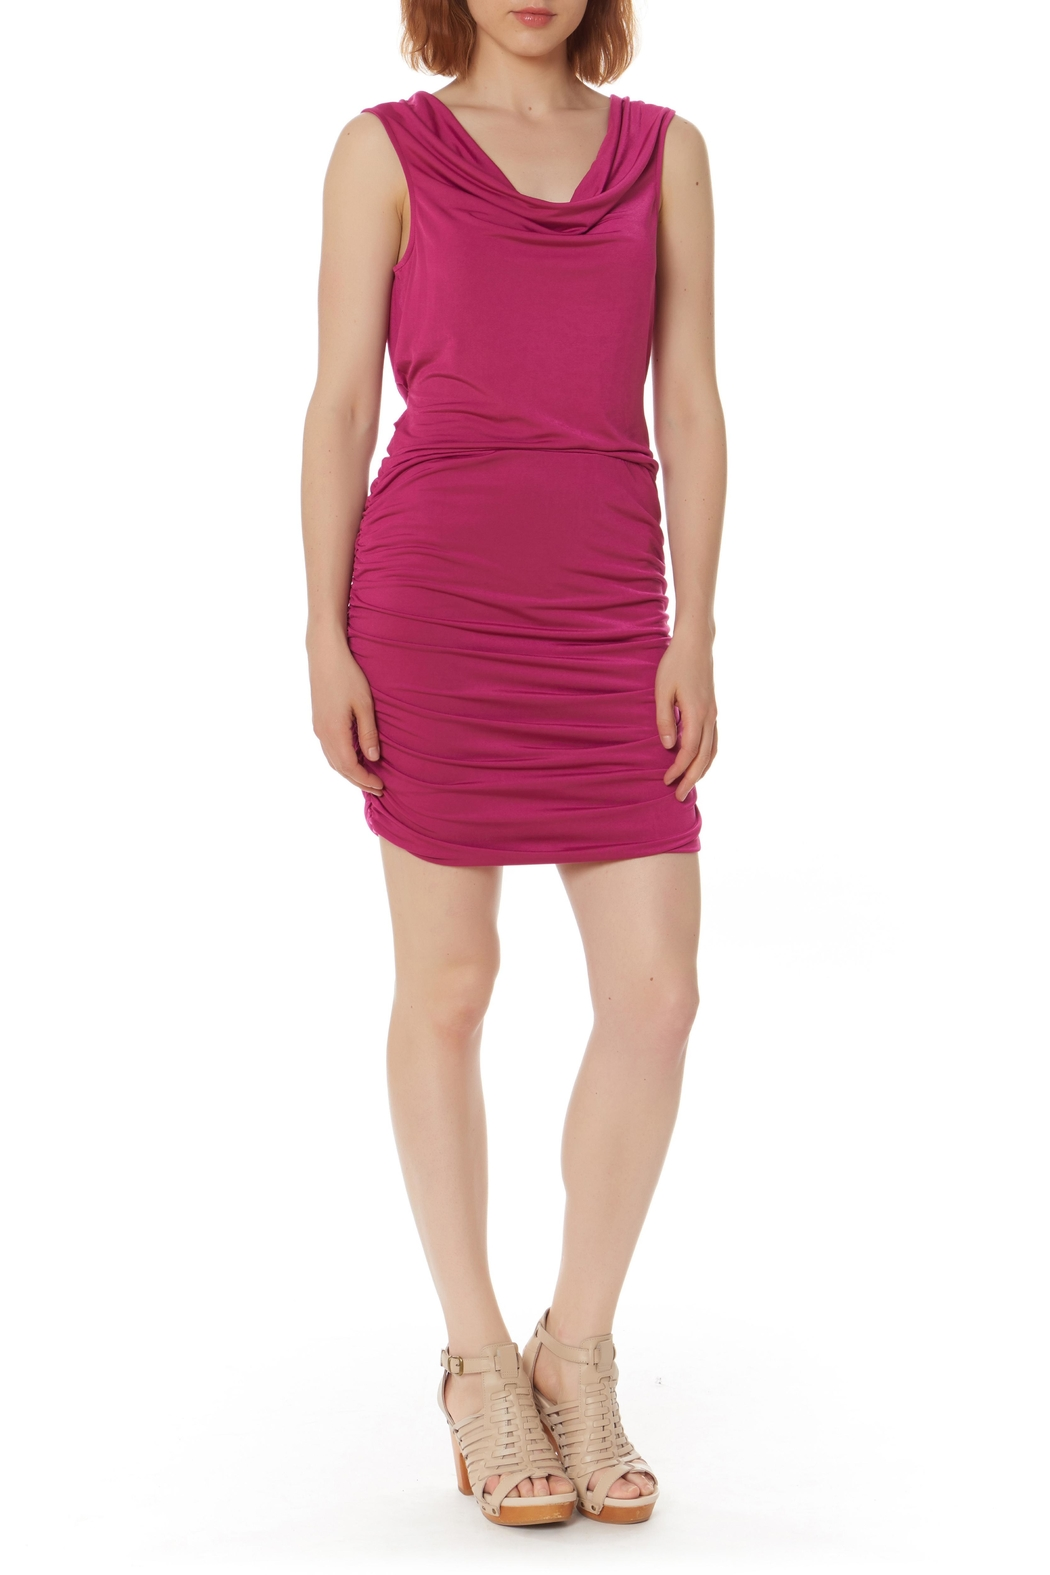 Bobi Los Angeles Shirred Side Dress - Main Image